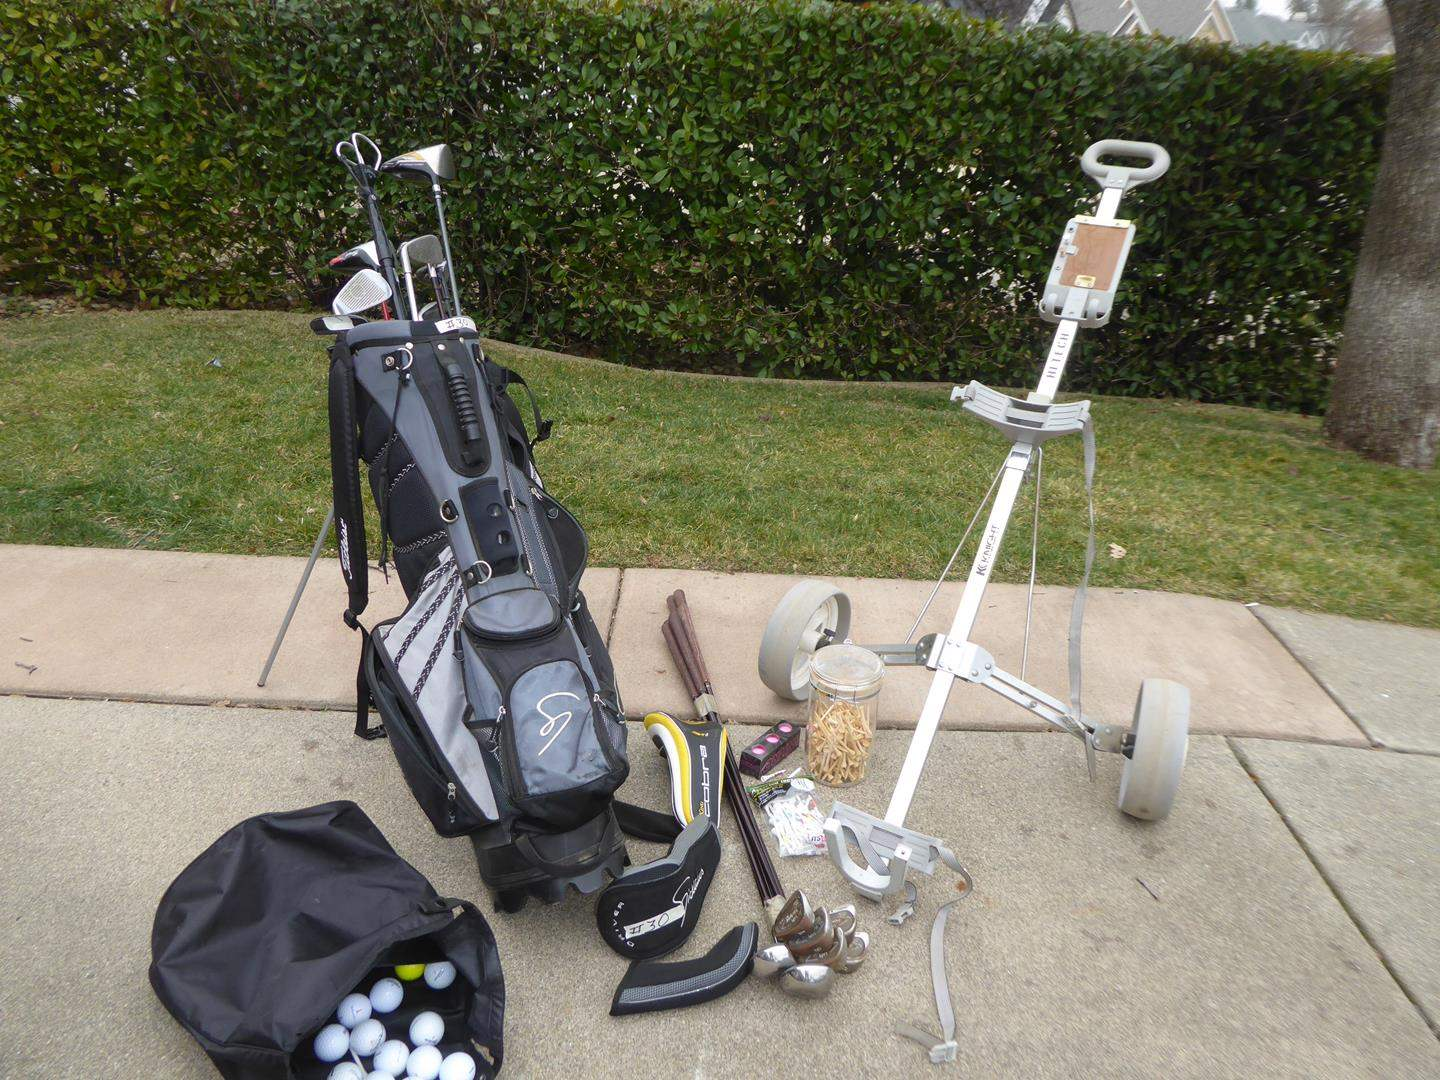 Lot # 30 - Jack Nicklaus Golf Bag and Knight Hi-Tech Cart w/ Misc. Golf Clubs, Balls and Tees  (main image)